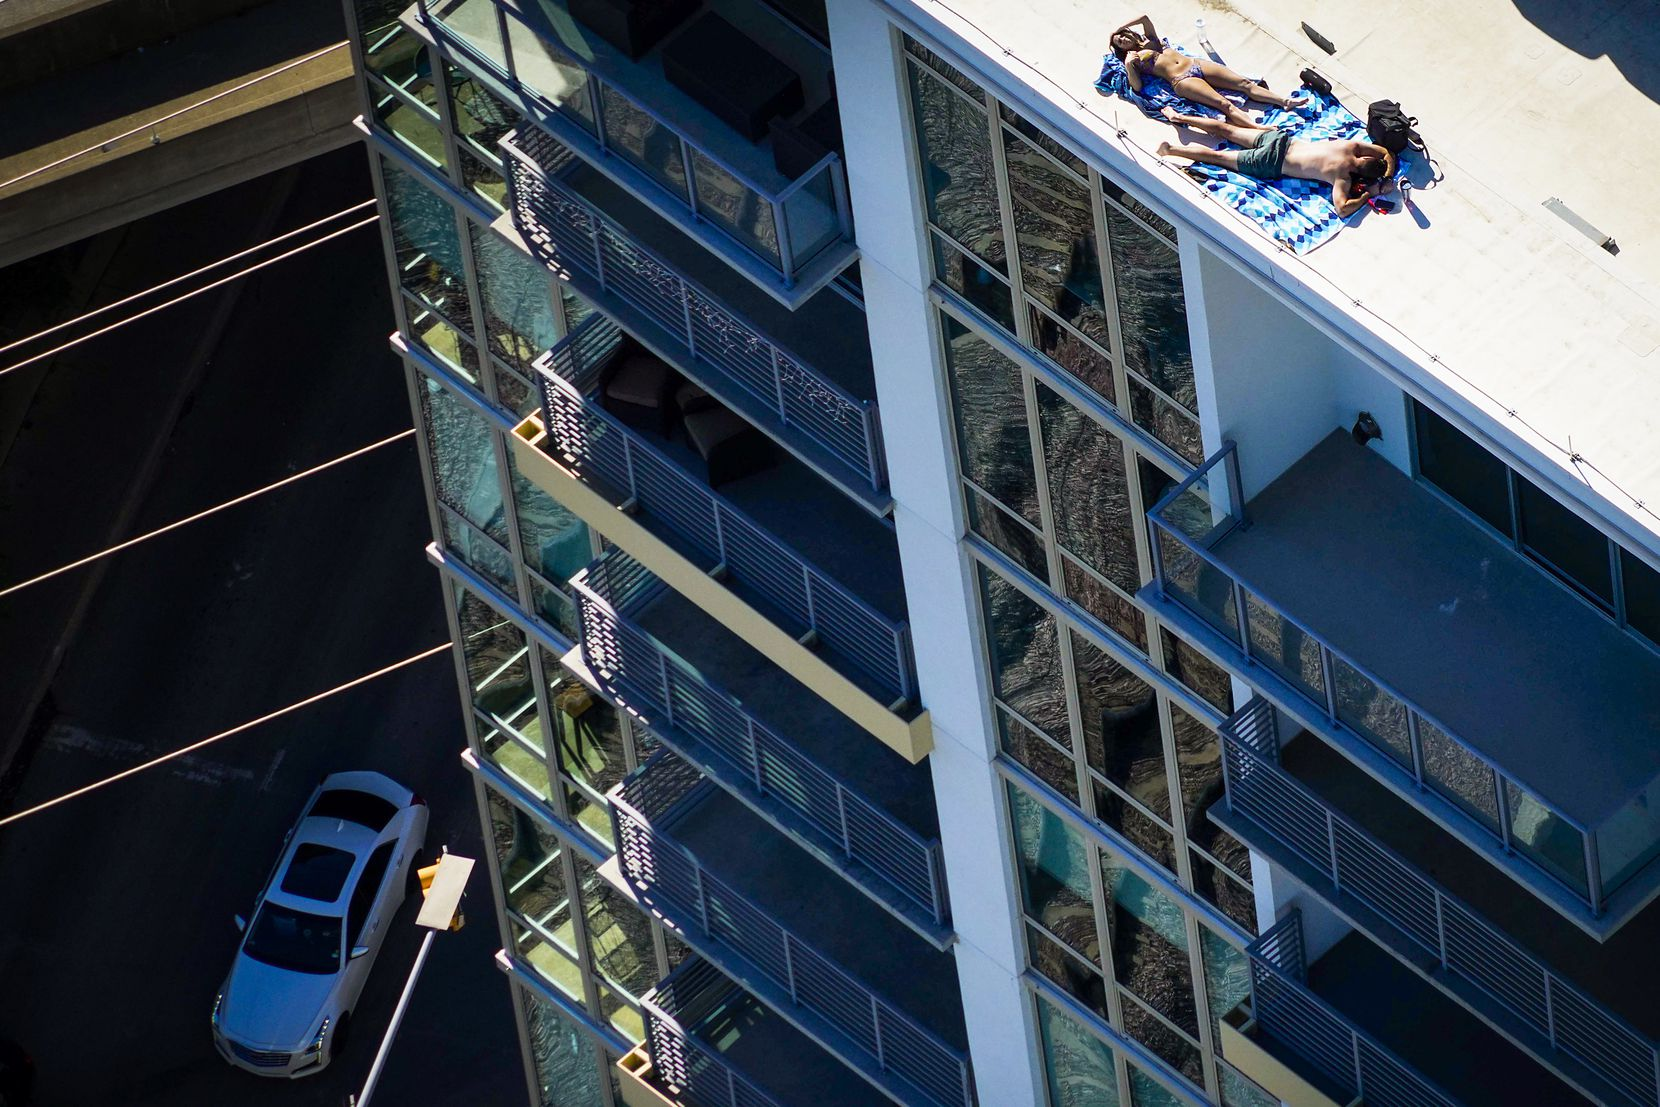 Aerial view of a couple sunbathing on the roof of the The Katy in Victory Park Apartments on March 24, 2020 in Dallas. Dallas County's shelter-in-place order went into effect at 11:59 p.m. the previous day, requiring all people living in Dallas County to stay home, except for essential activities and jobs.